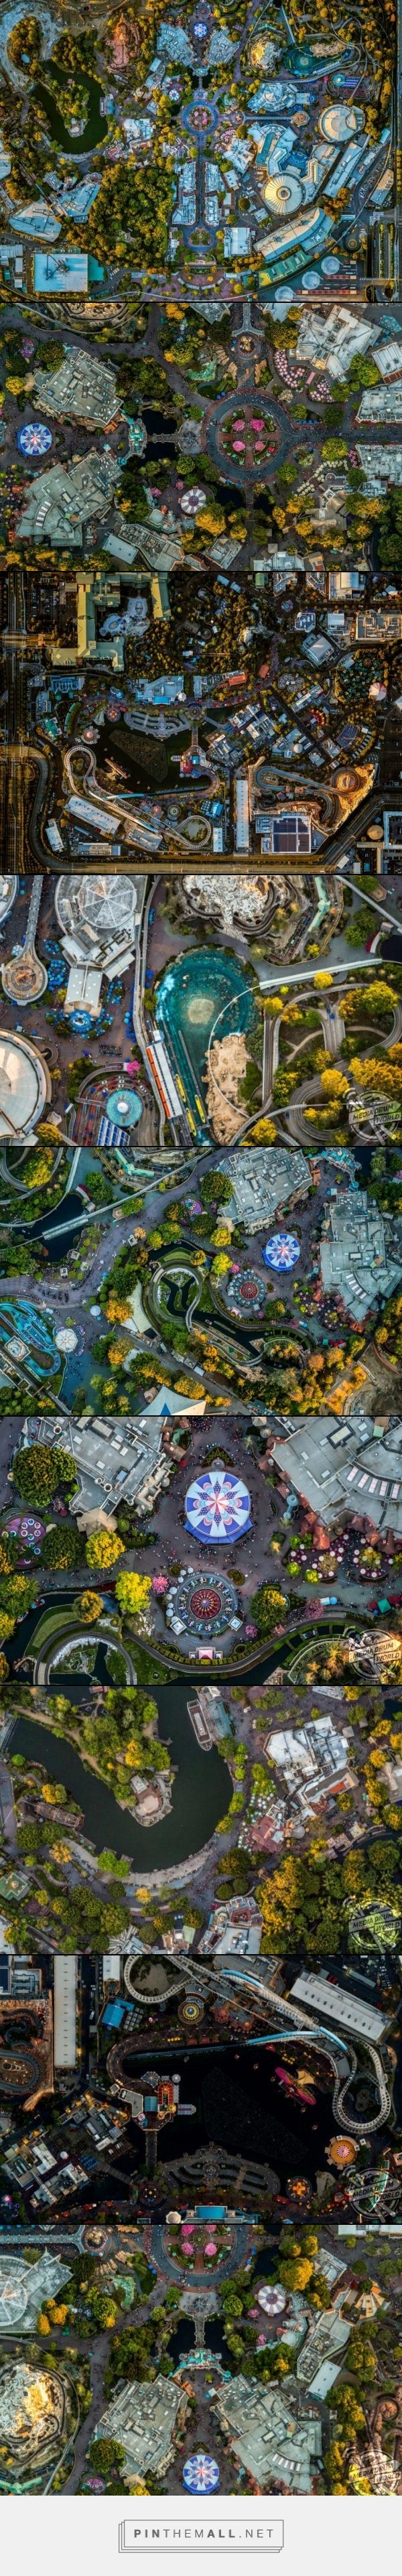 Overhead shots of Disneyland and California Adventure